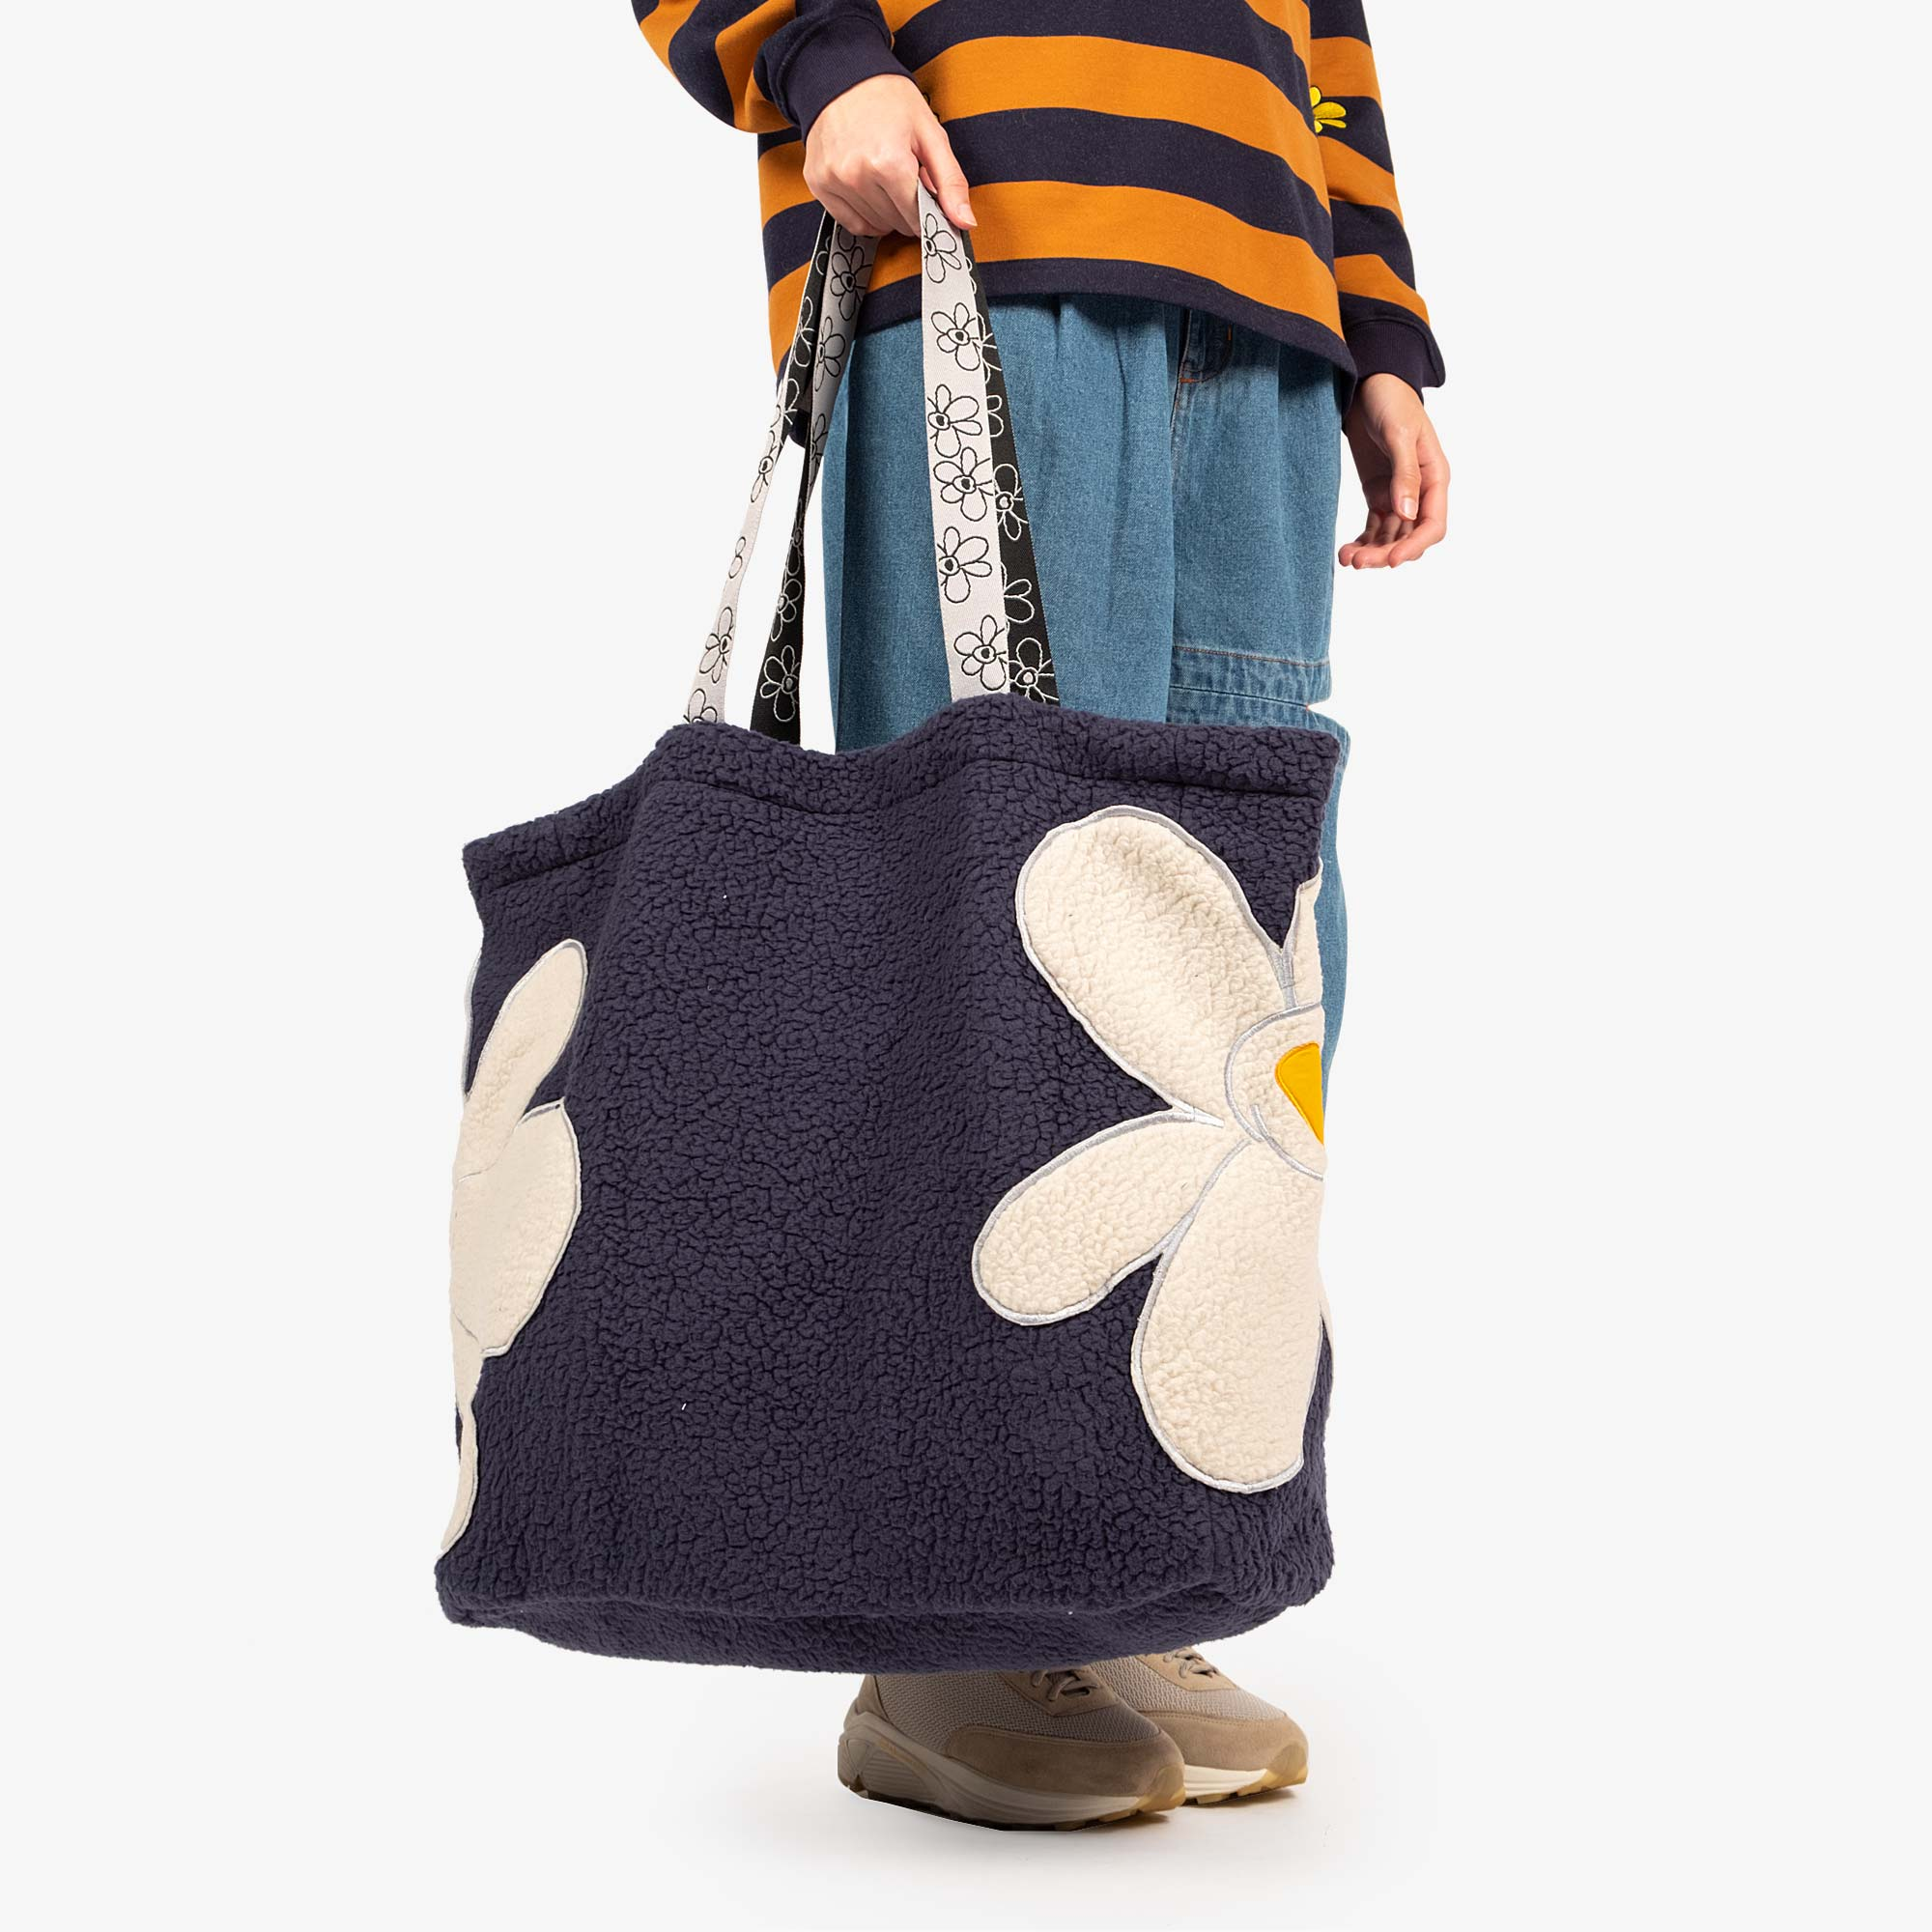 Perks and Mini (P.A.M.) Popping Gestures Recycled Shearling Tote Bag - Navy Fog 5